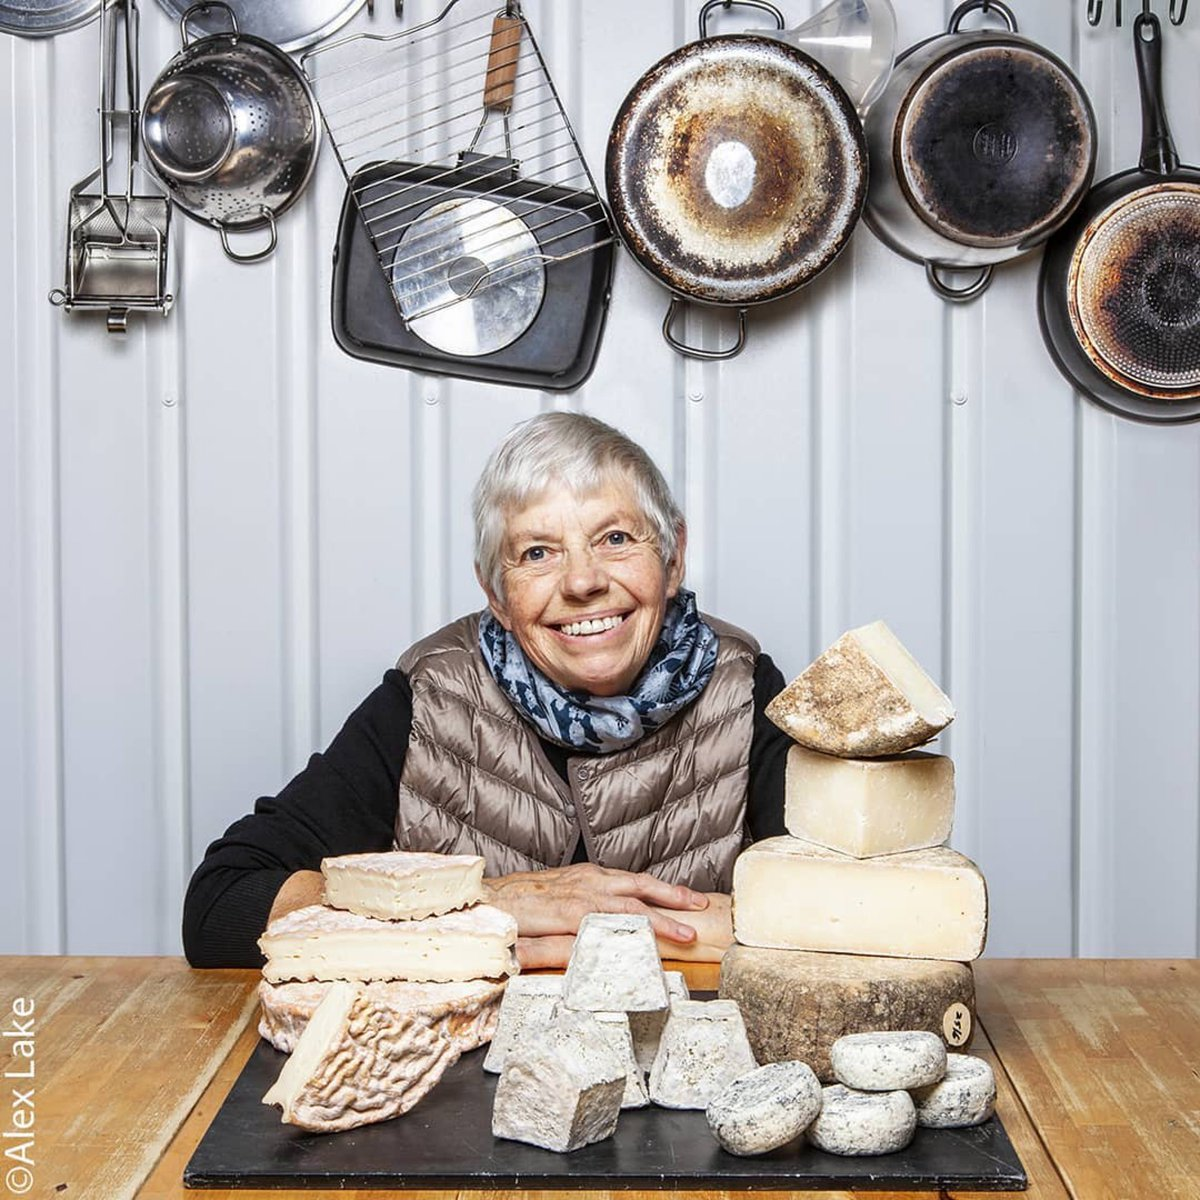 RT @NealsYardDairy: Remembering our friend and colleague Mary Holbrook, 1938-2019. https://t.co/EIhddfM0q0